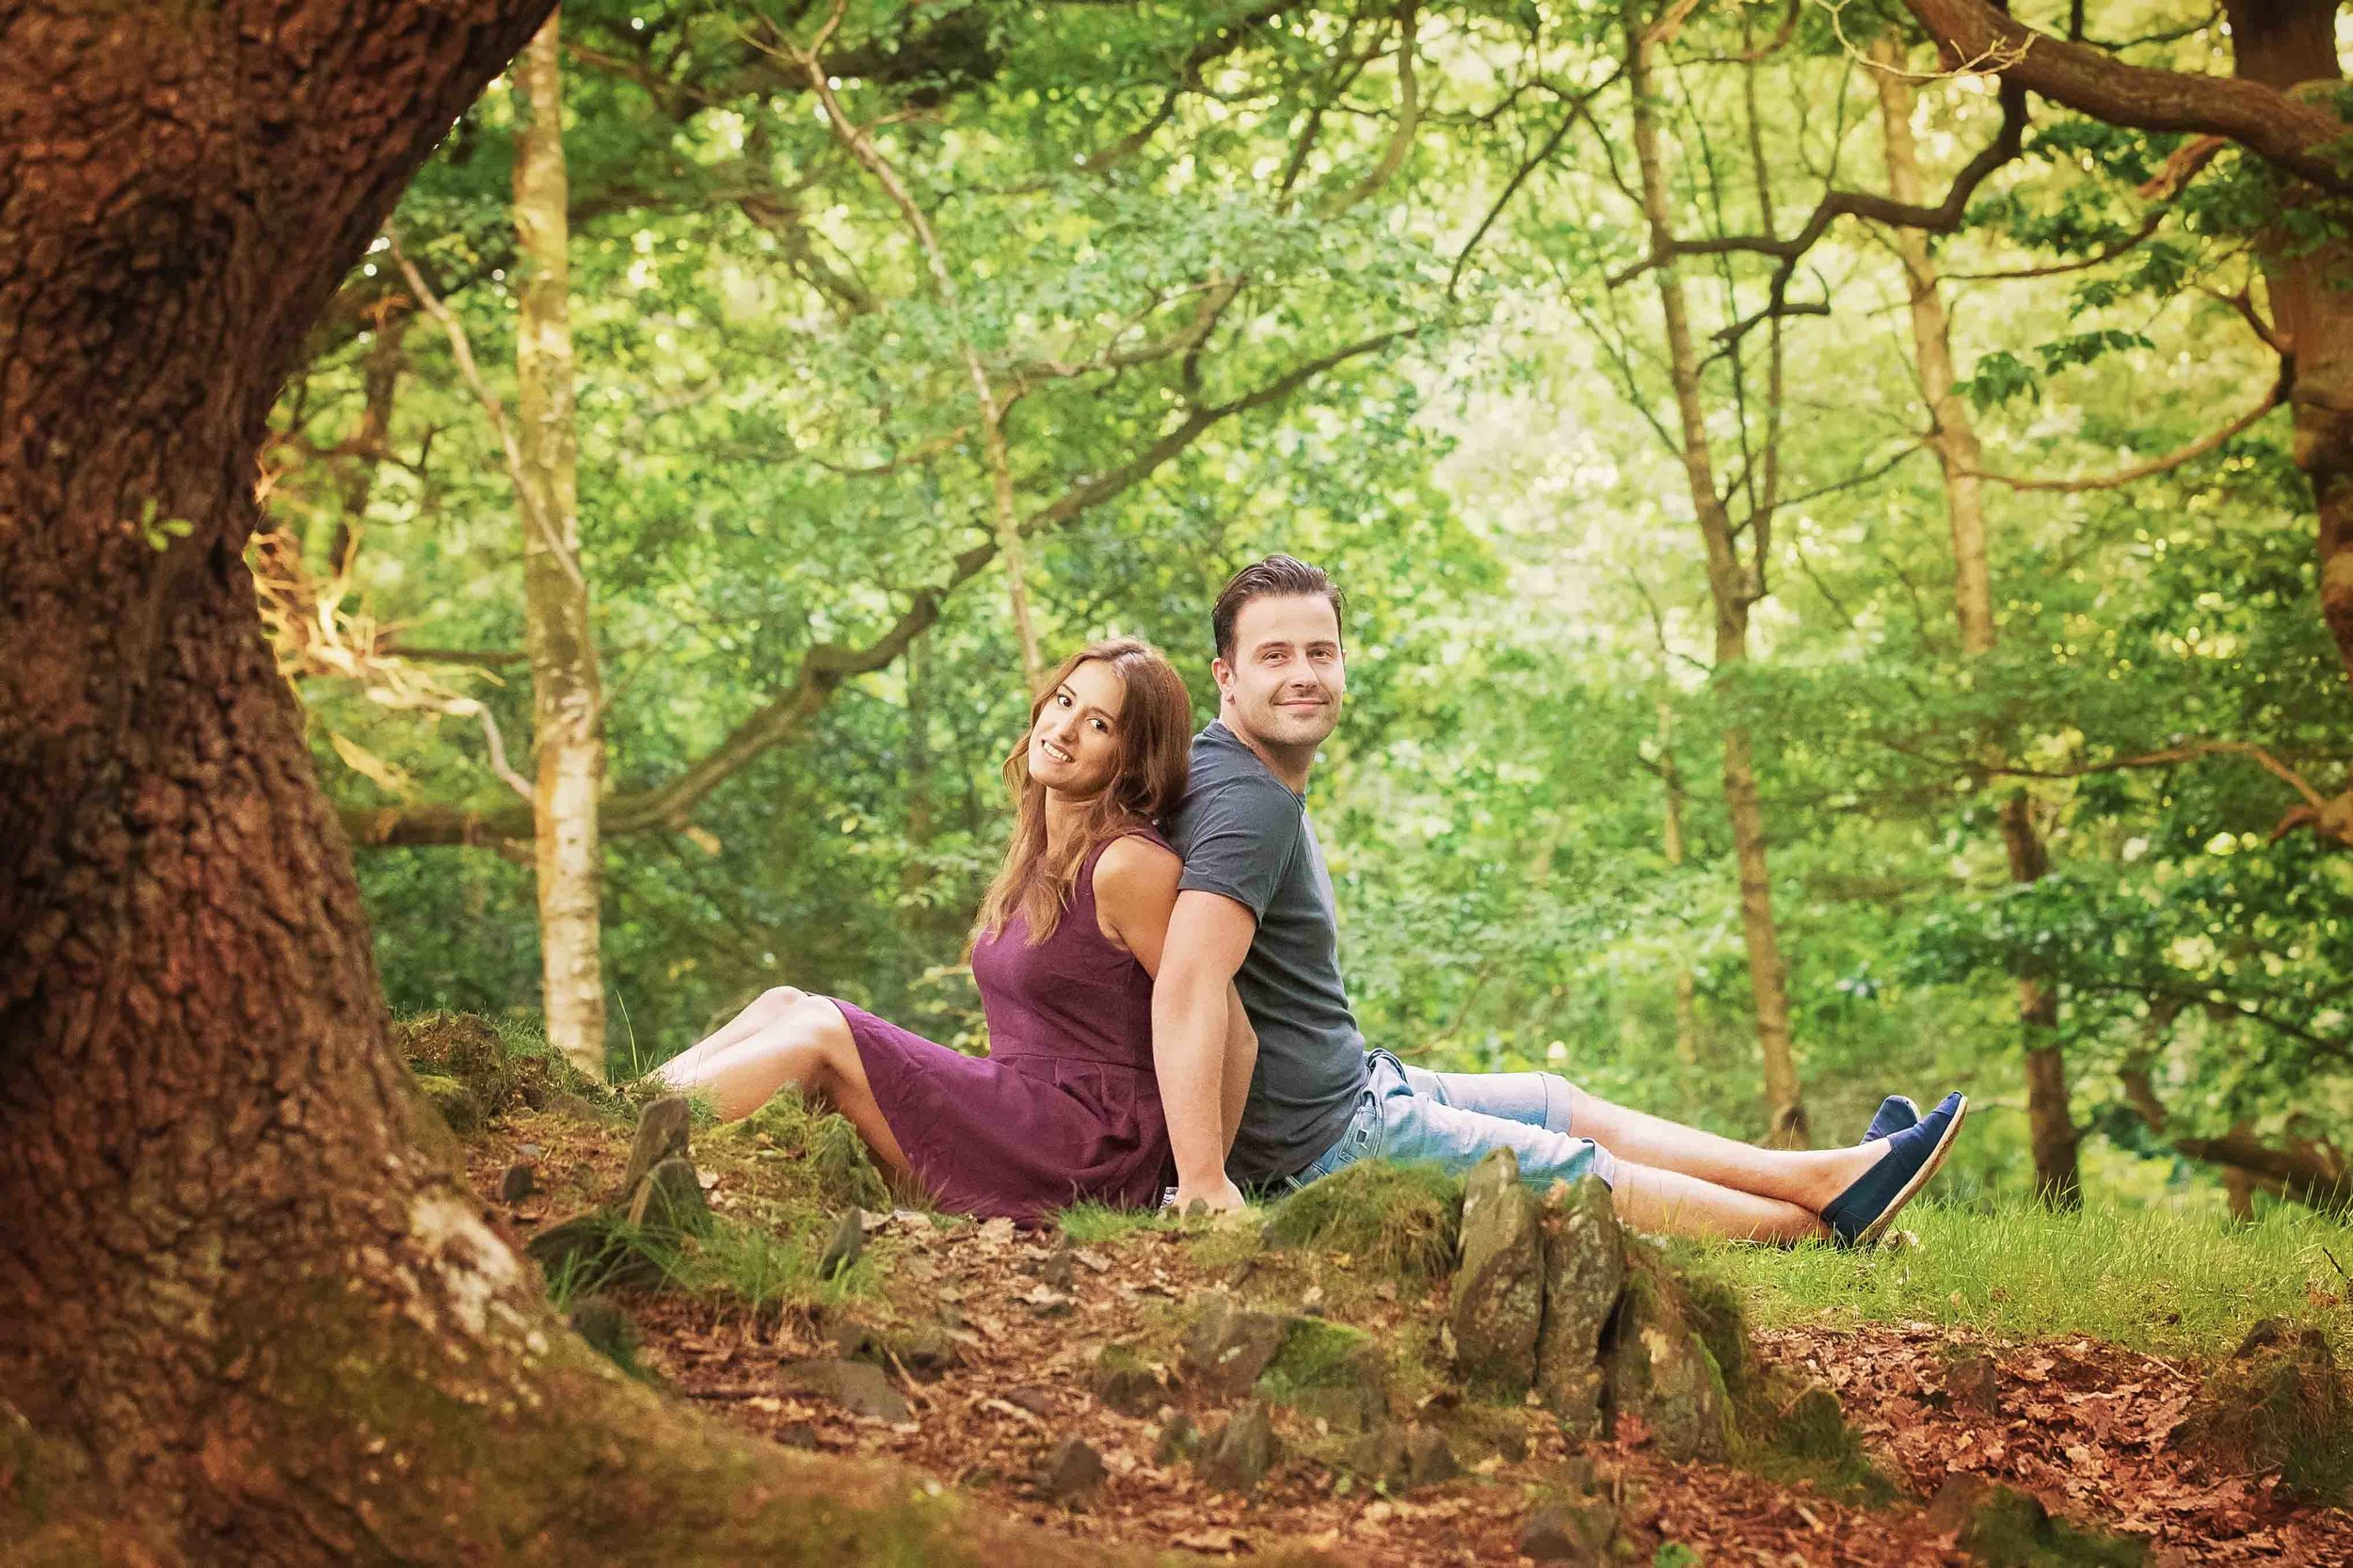 Tim & Megan, Swithland Wood, Leicestershire